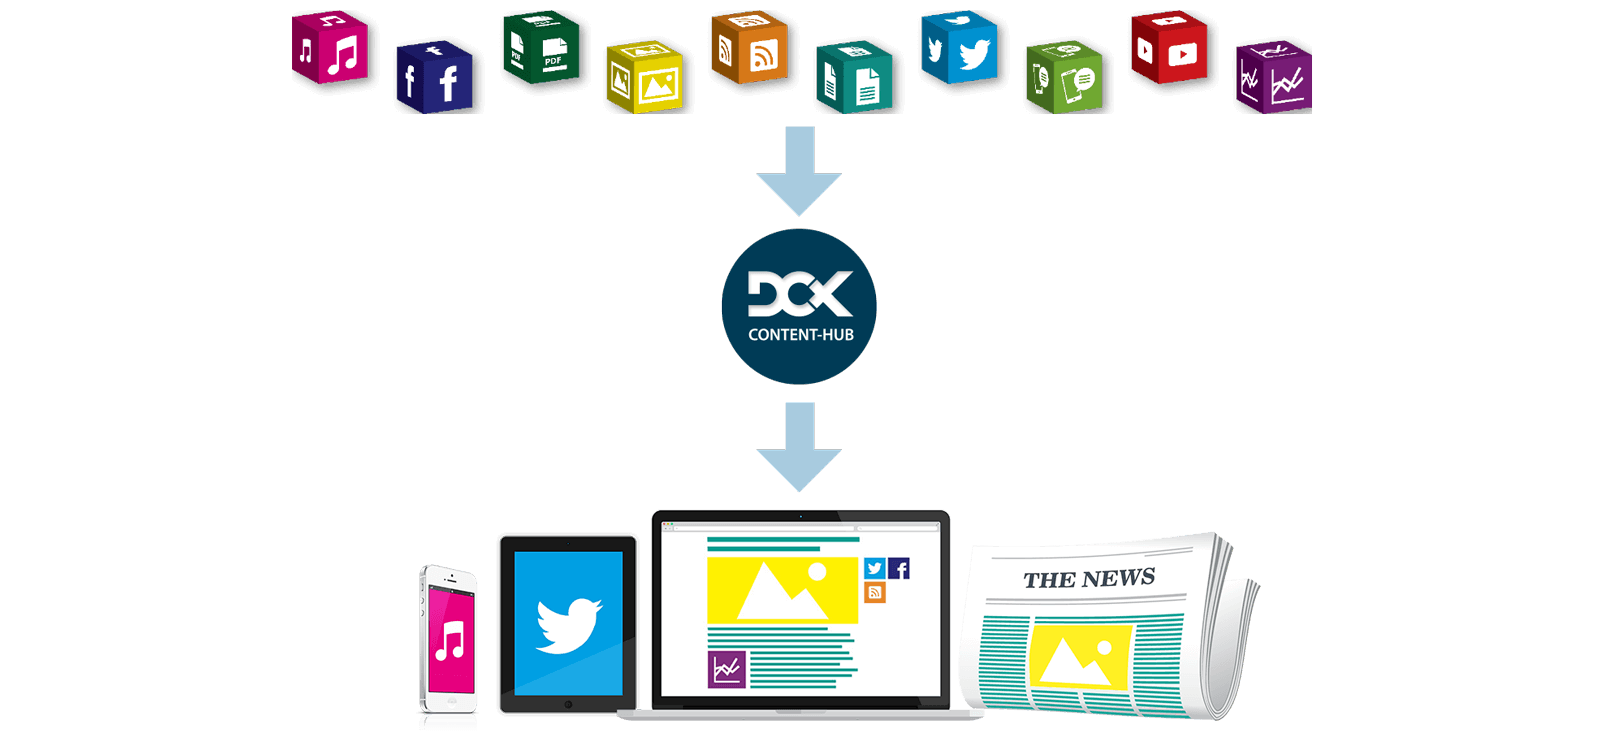 Image of a laptop, phone, tablet and a newspaper in a line where several media icon are made at the top. Both of them are connected with arrows. In between the arrows, there is an image of DCX content hub